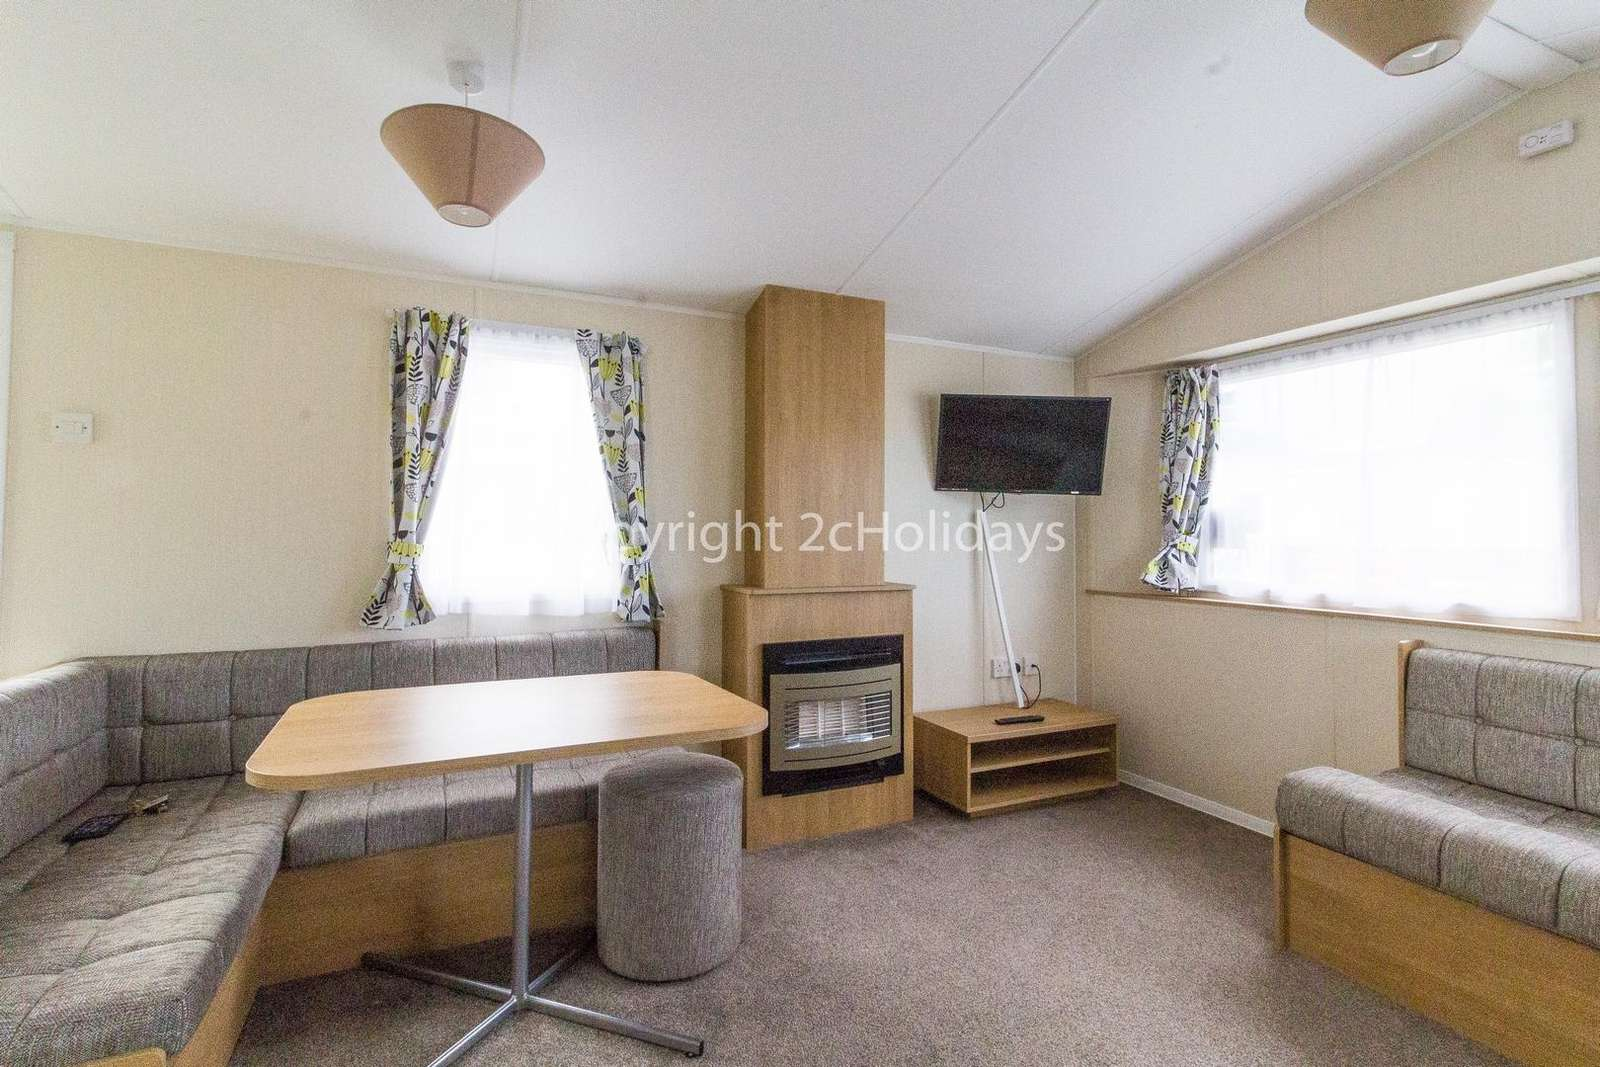 Spacious open plan lounge/ dining area, a great place to relax with your family!